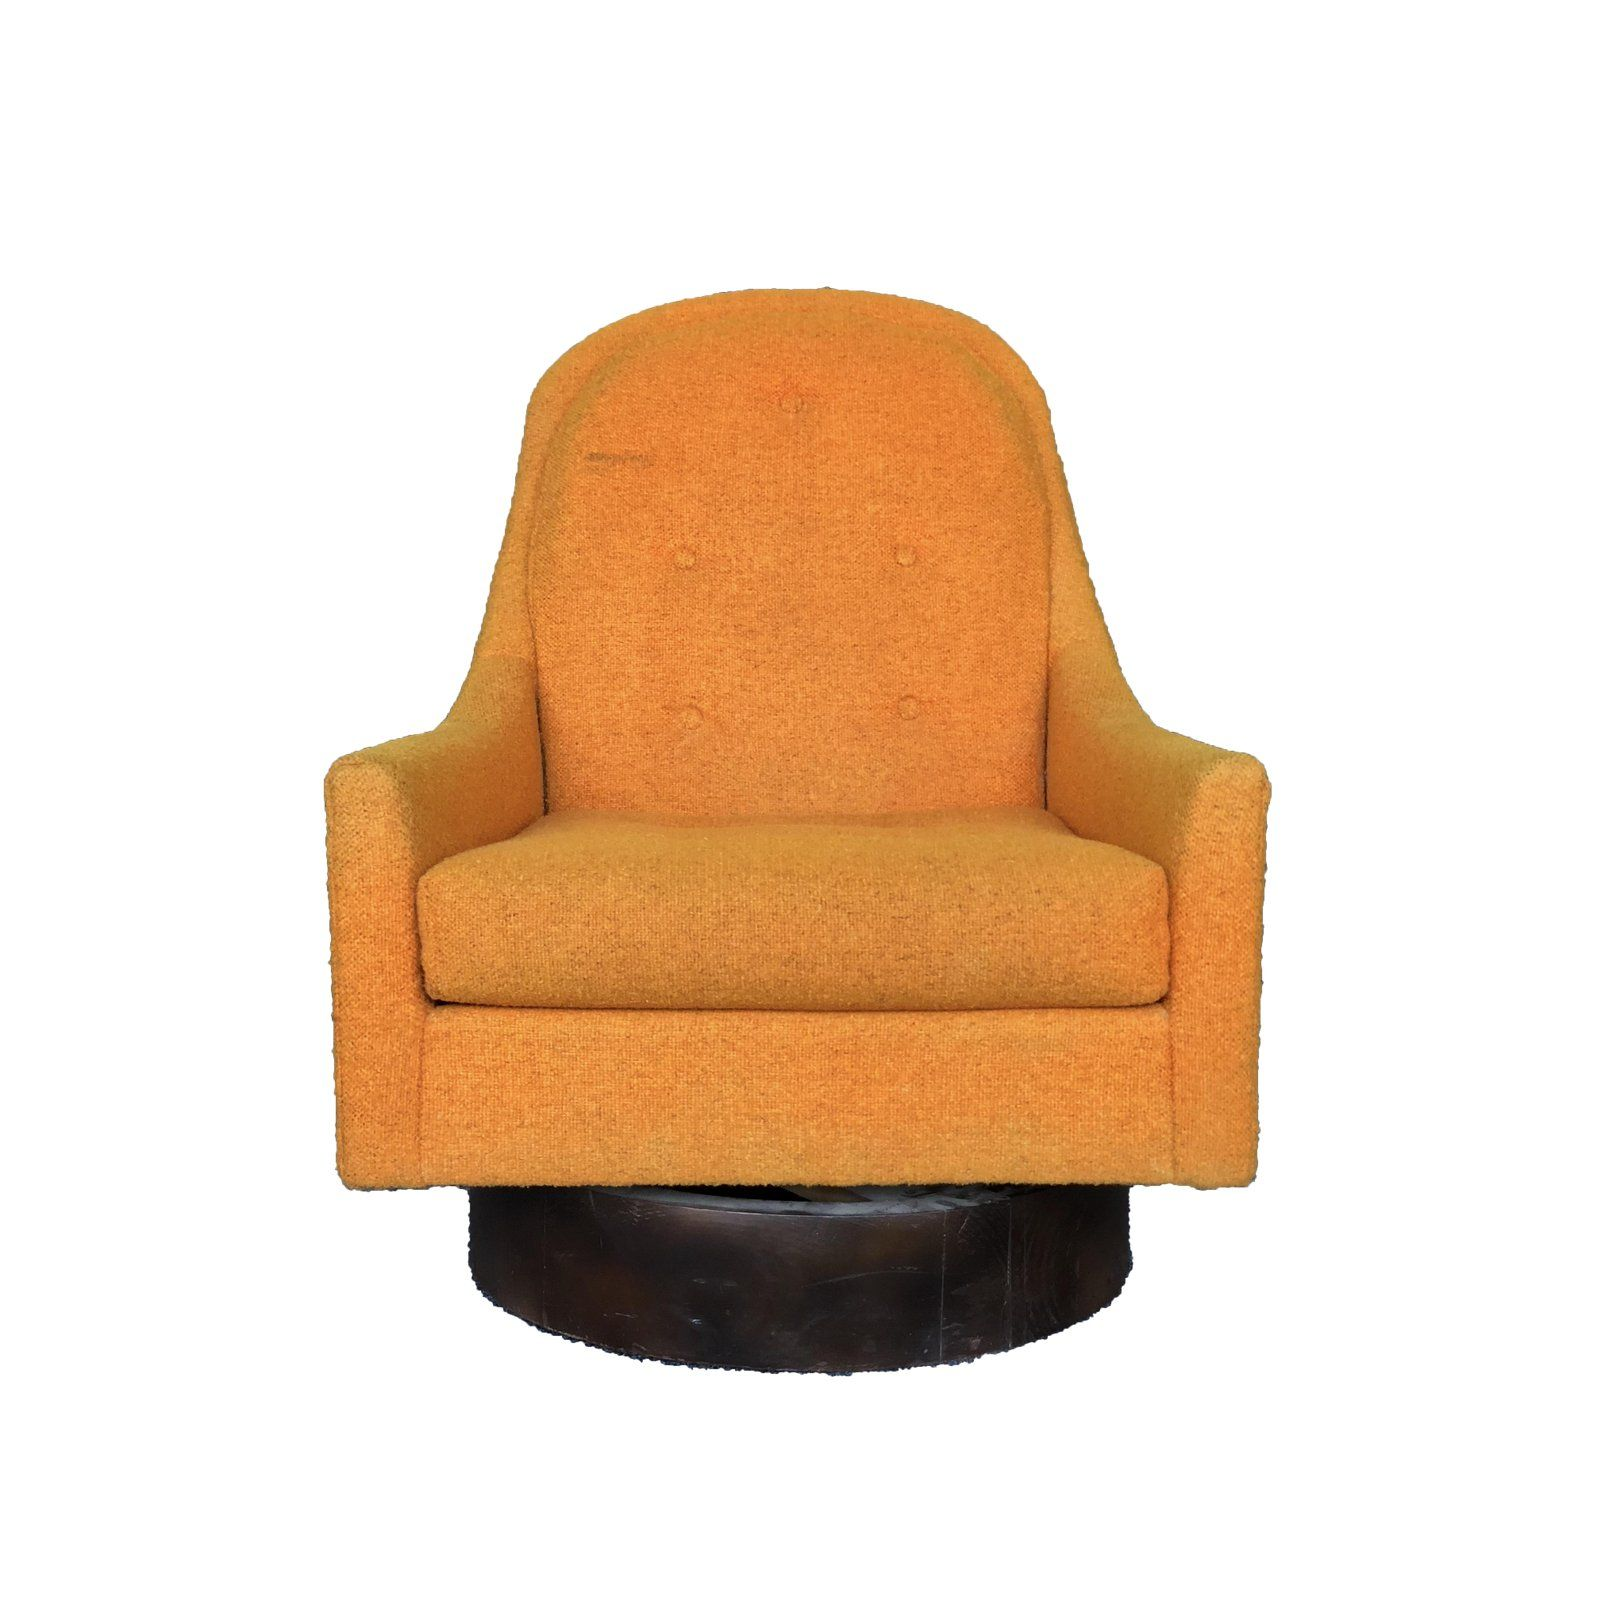 Outstanding Mid Century Modern Milo Baughman Style Floating Orange Onthecornerstone Fun Painted Chair Ideas Images Onthecornerstoneorg